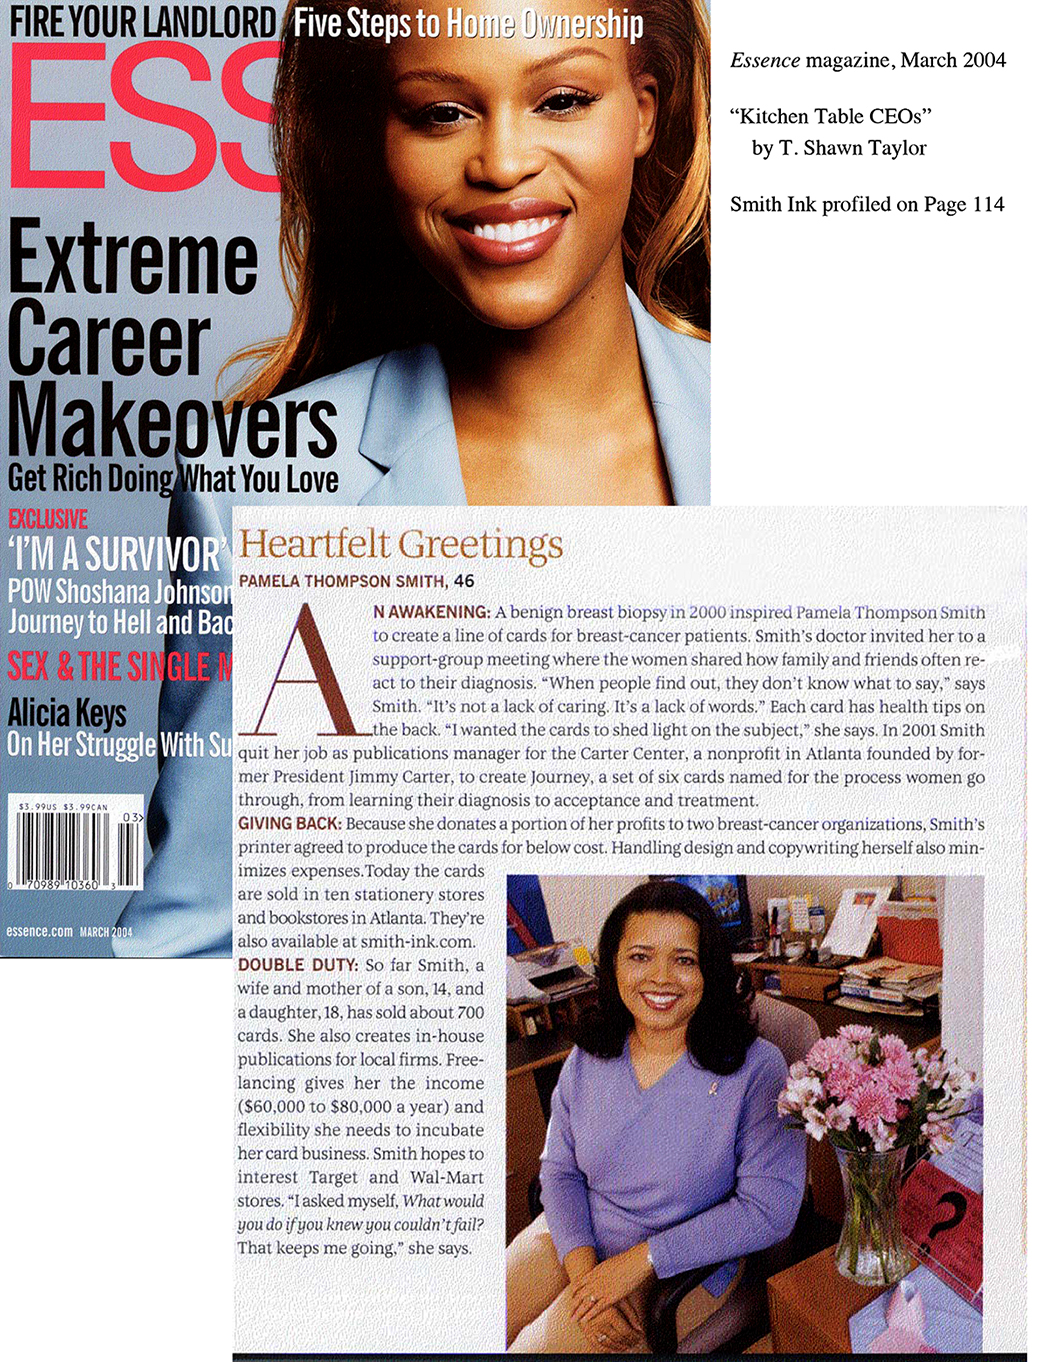 Essence Magazine Article about Pam Smith, Smith Ink, LLC